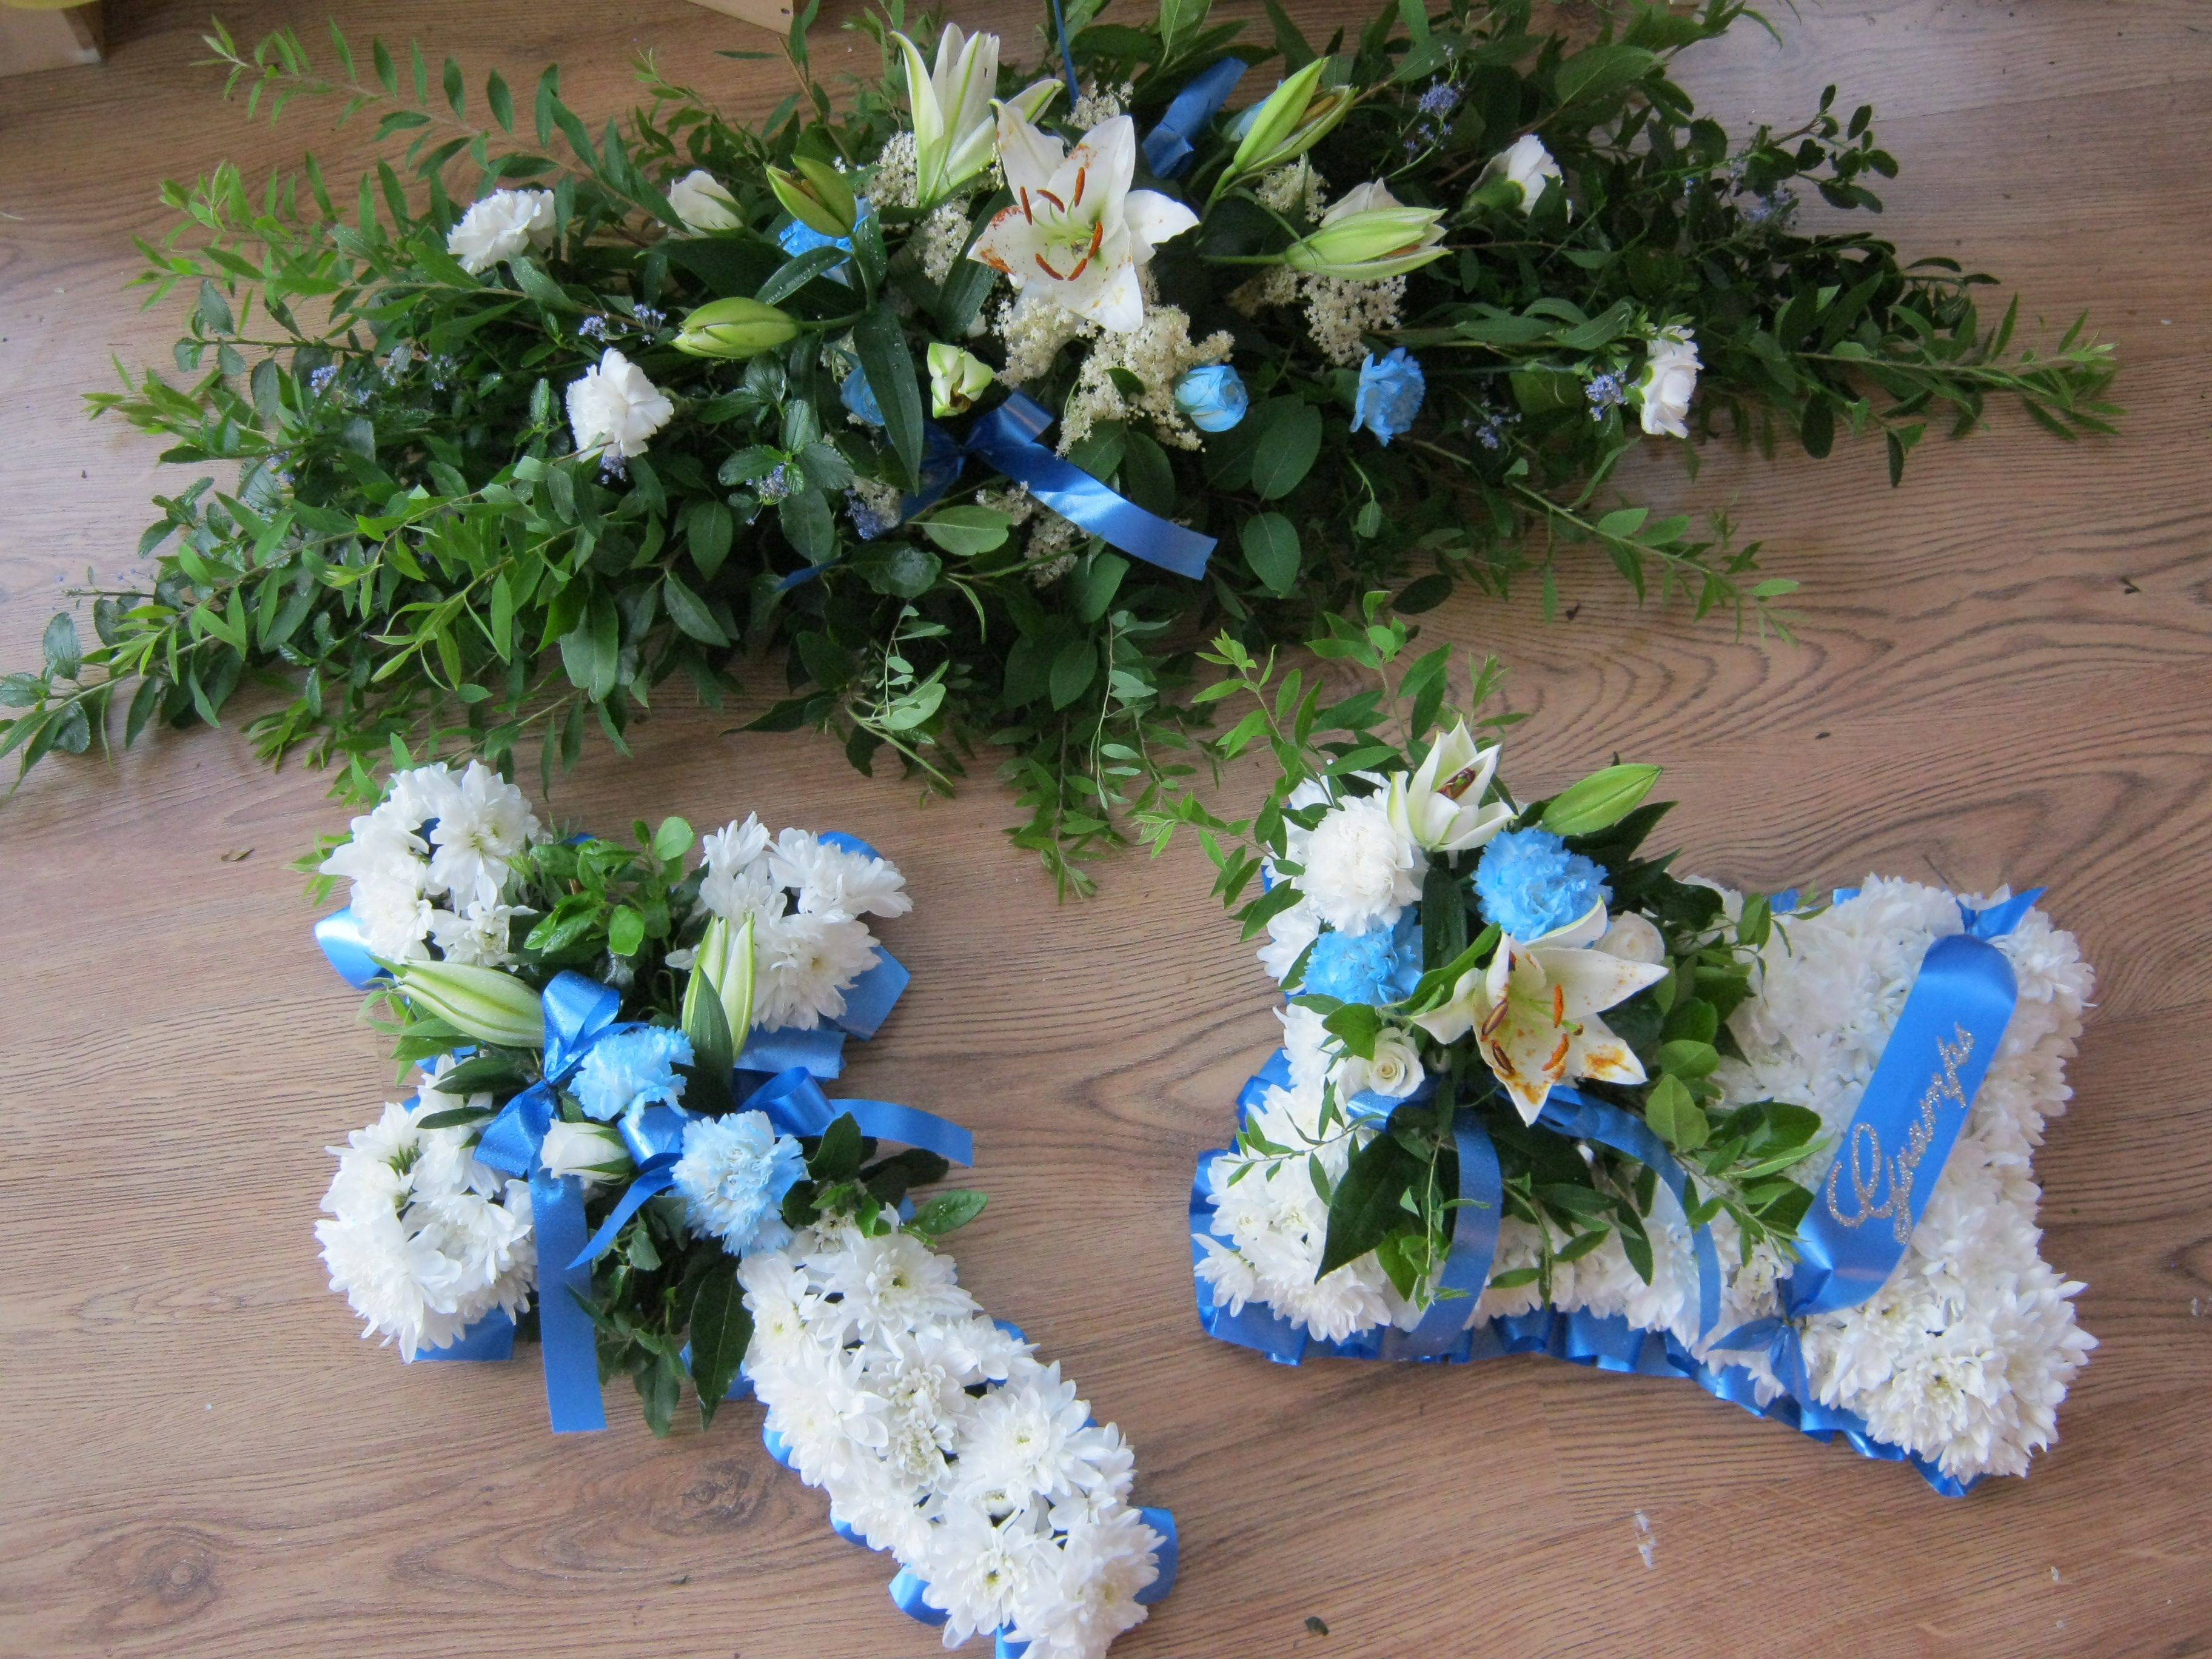 Blue funeral flowers chic dreams funeral flowers blue funeral flowers chic dreams izmirmasajfo